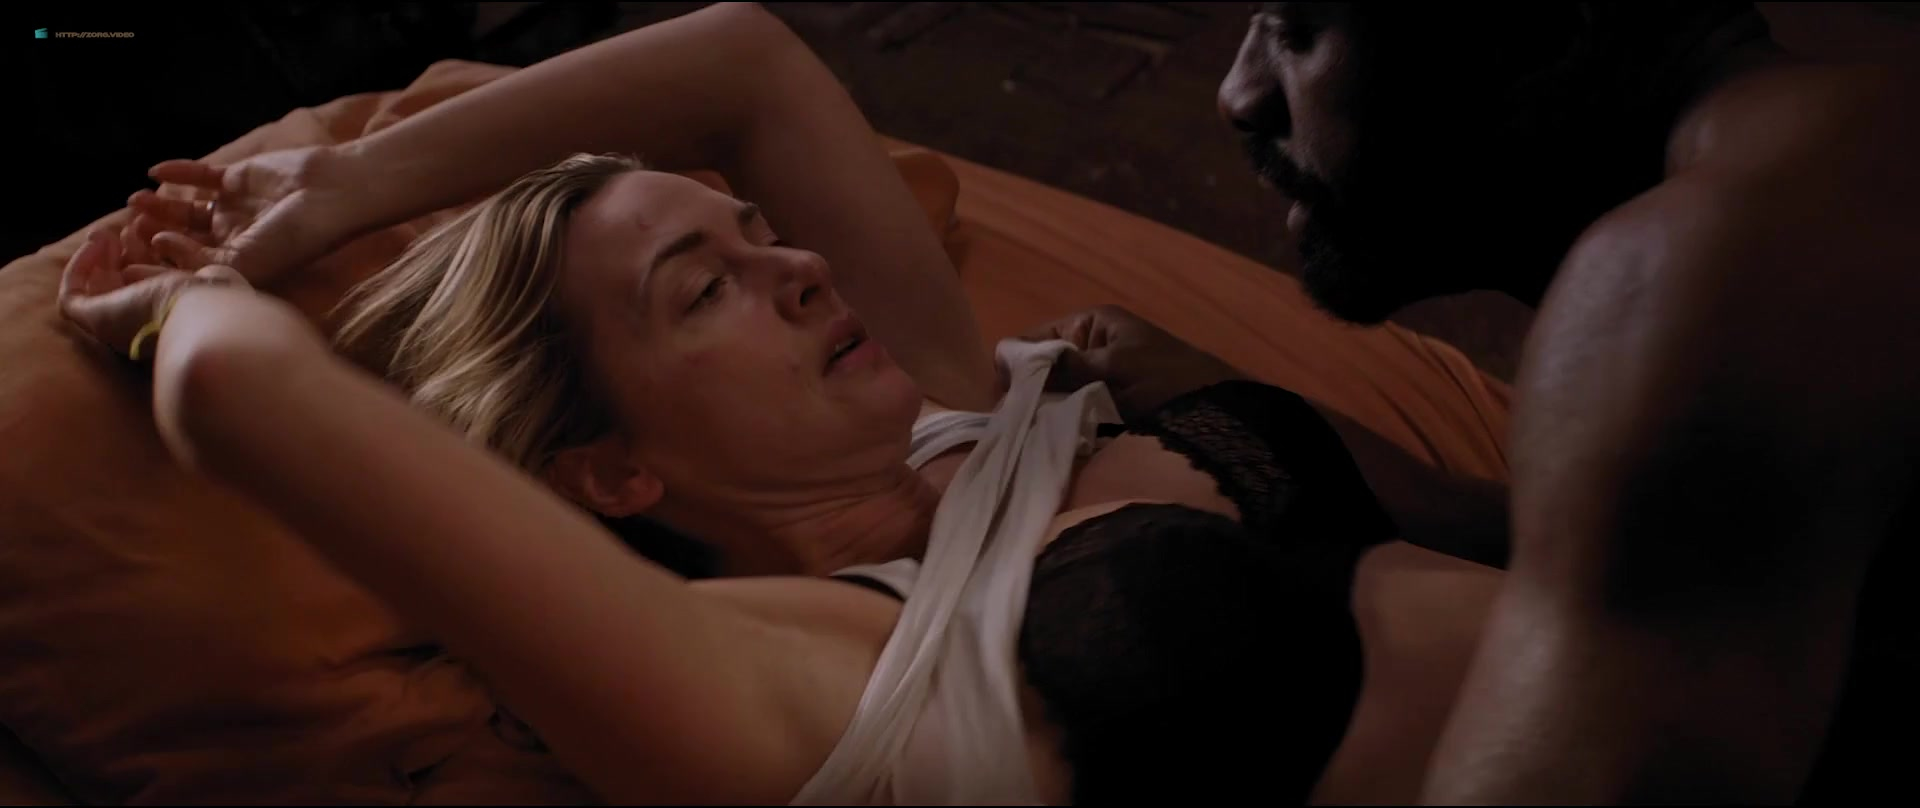 Kate Winslet sexy - The Mountain Between Us (2017)